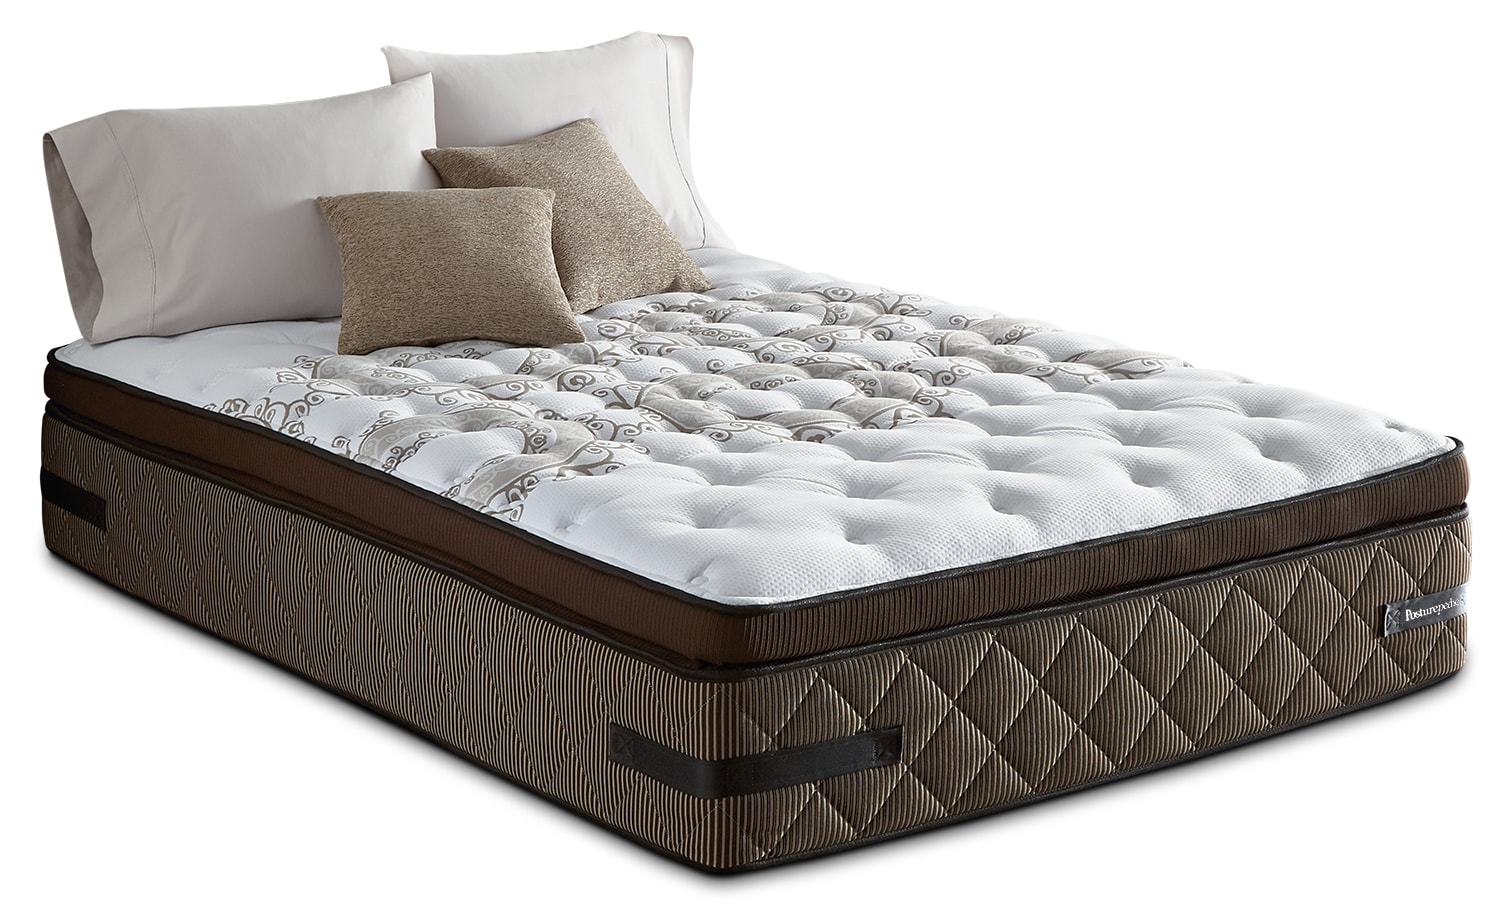 Mattresses and Bedding - Sealy Crown Jewel Sunsera Euro Pillow-Top Firm Twin XL Mattress